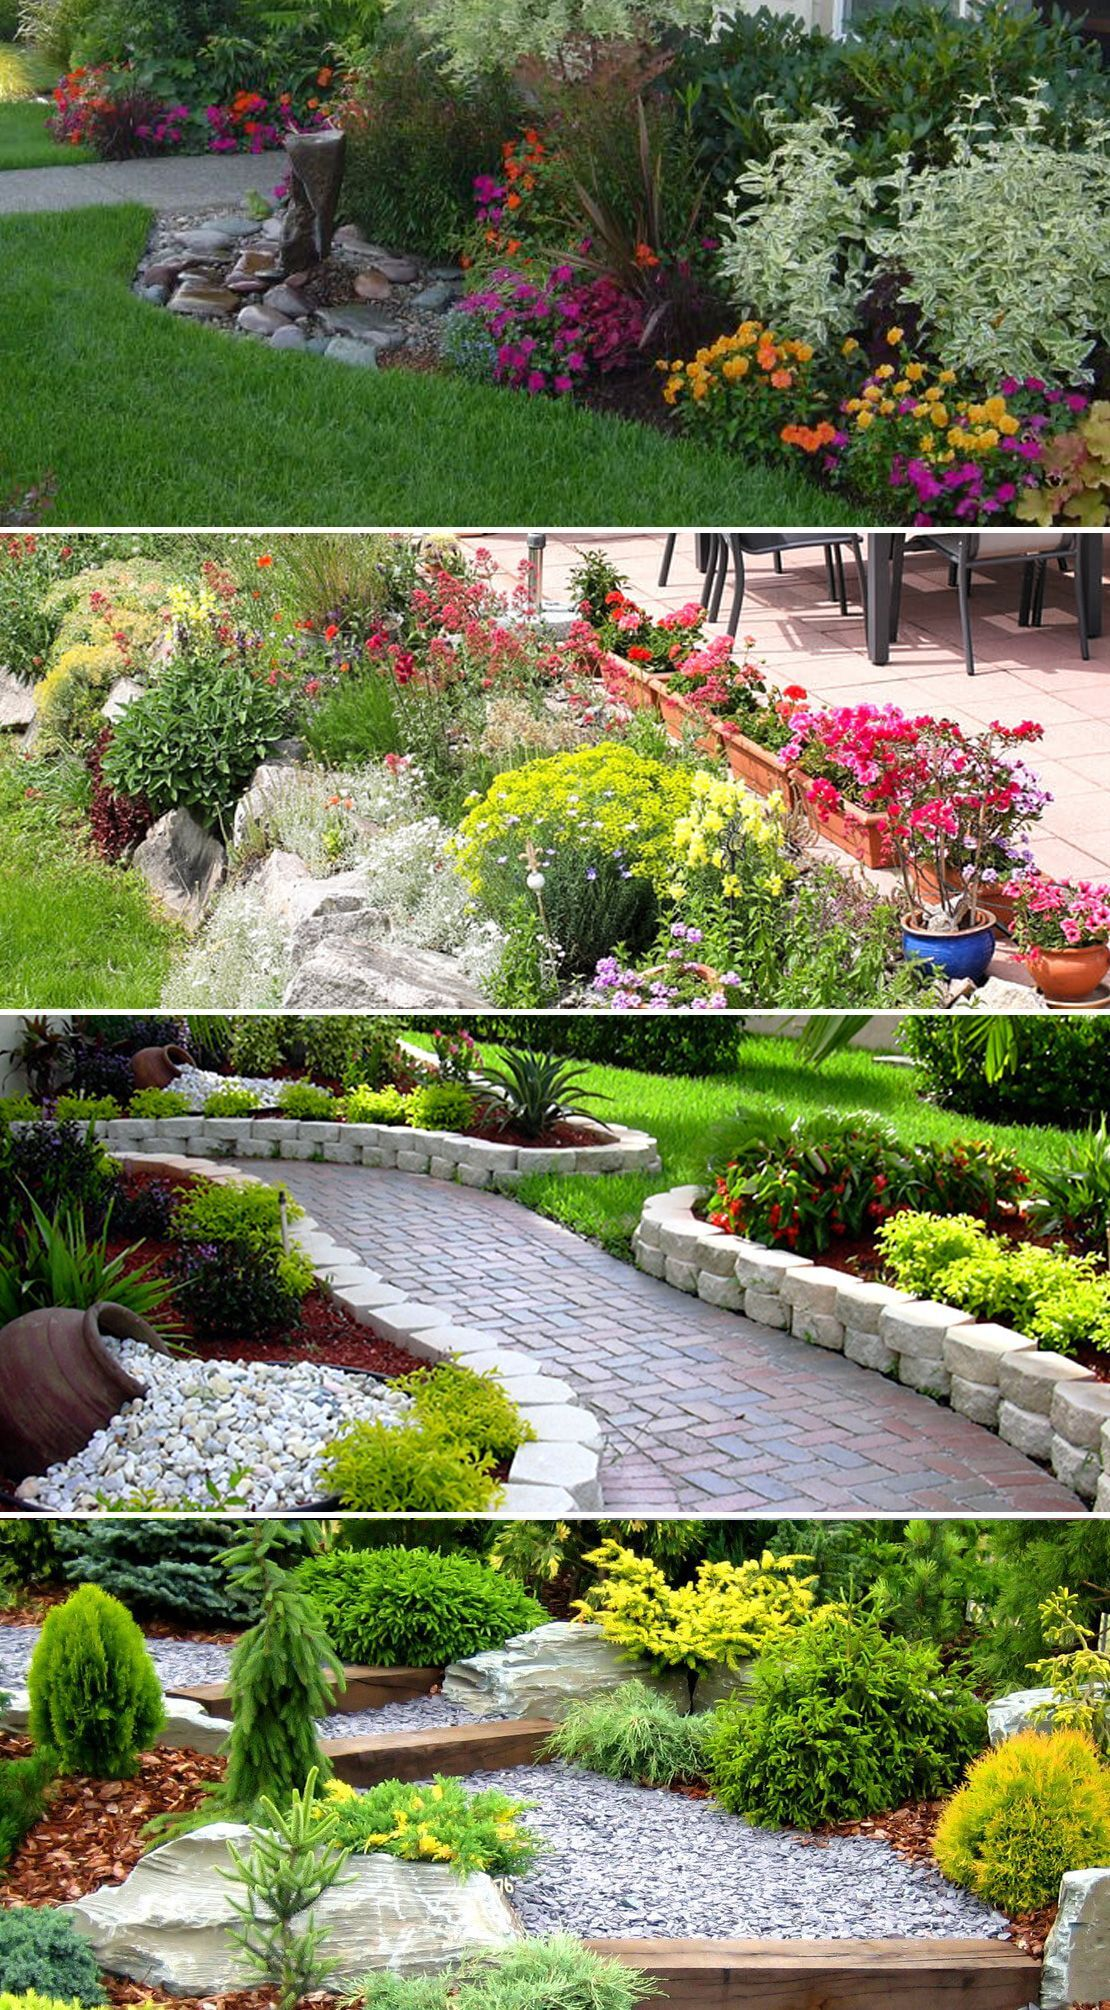 Get Inspired By Our Favorite Landscaping Designs And Ideas #Garden